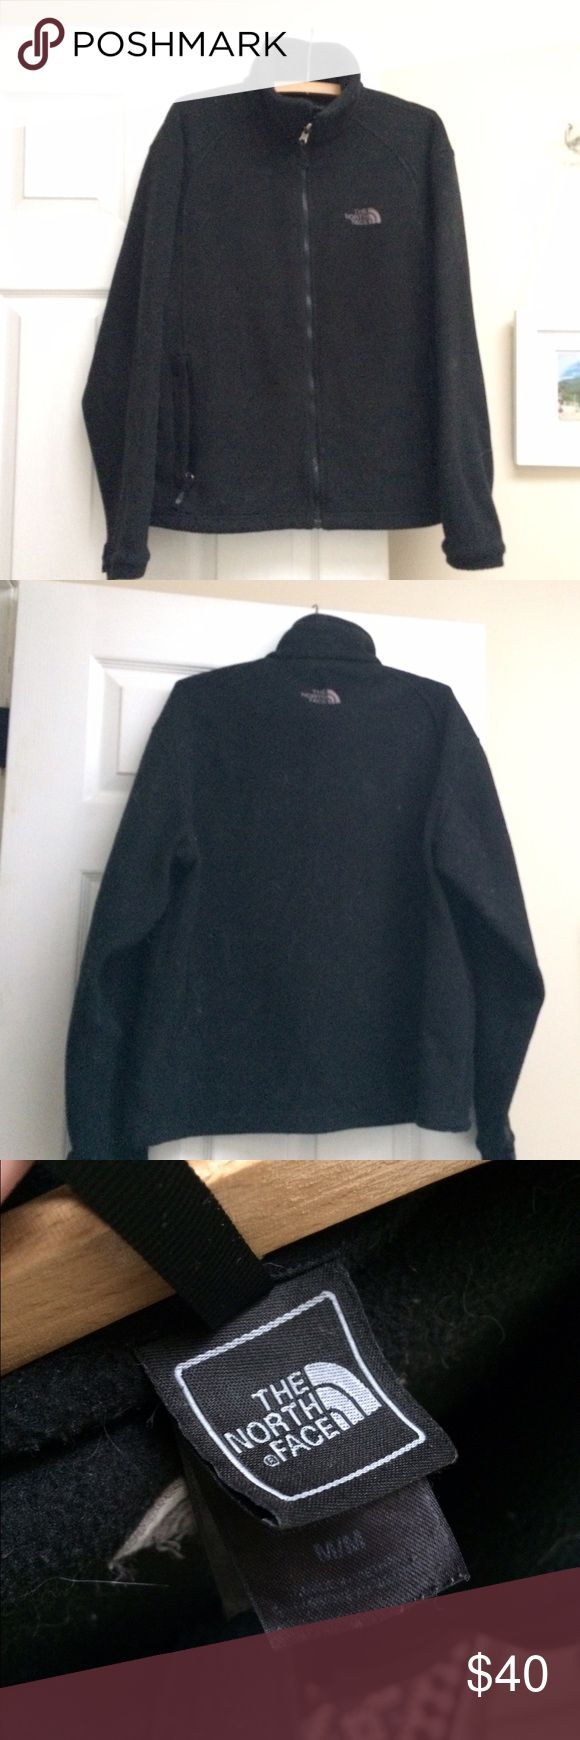 The North Face Fleece Men's Jacket Full Zip The North Face Fleece Men's Black Jacket, size medium, loose fit not form fitting,two front pockets, two interior pockets. Very comfortable (we have way too many black jackets so are downsizing!) The North Face Jackets & Coats